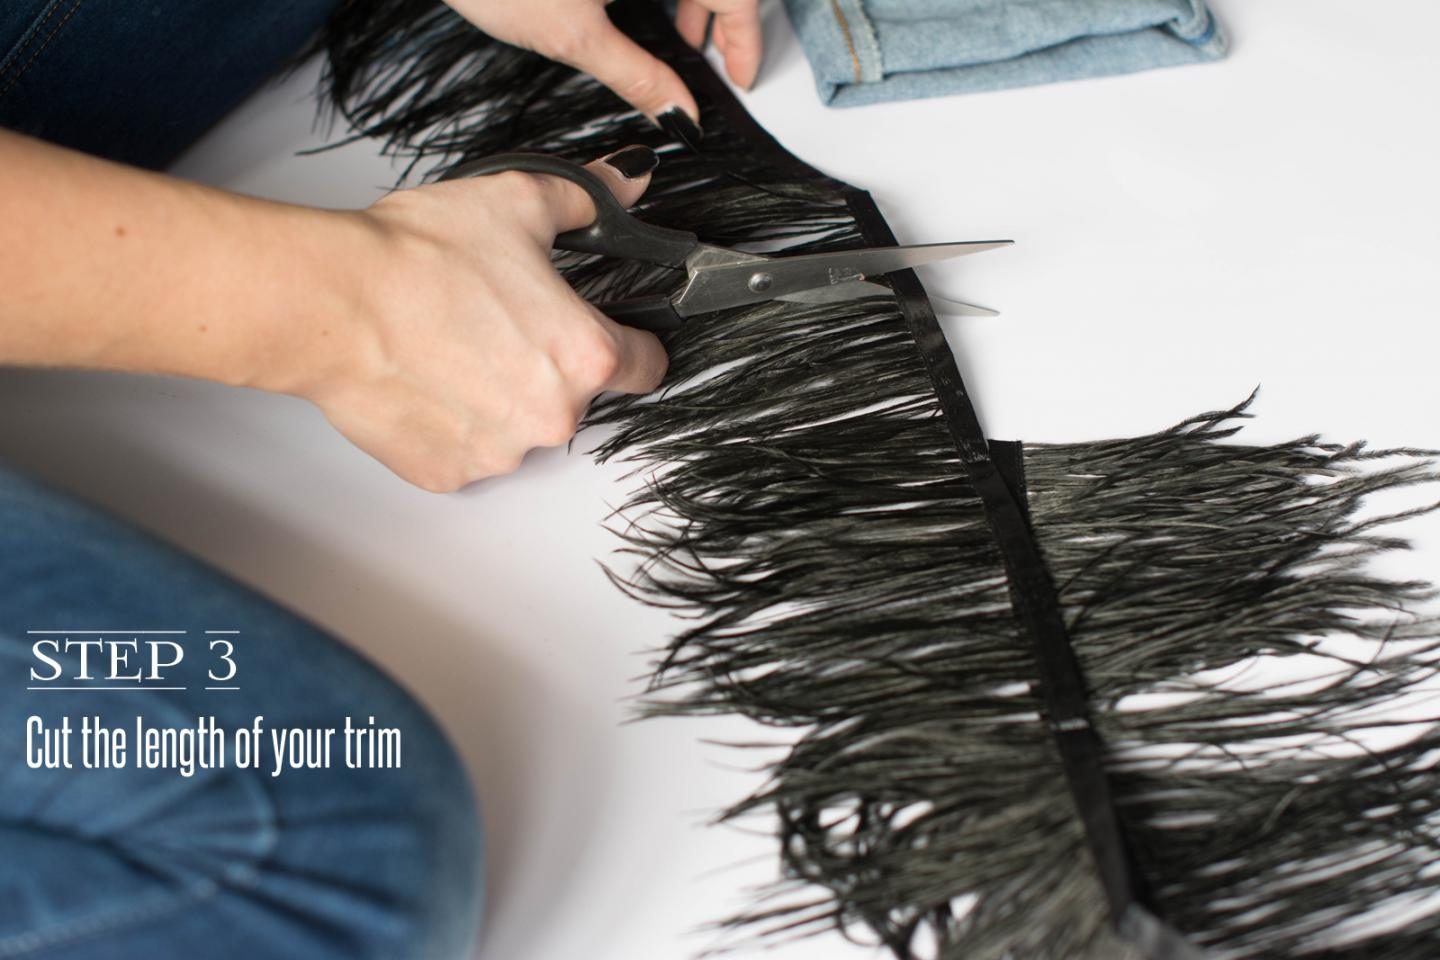 EJSTYLE - DIY Ostrich feather trim jeans, customise jeans, step 3